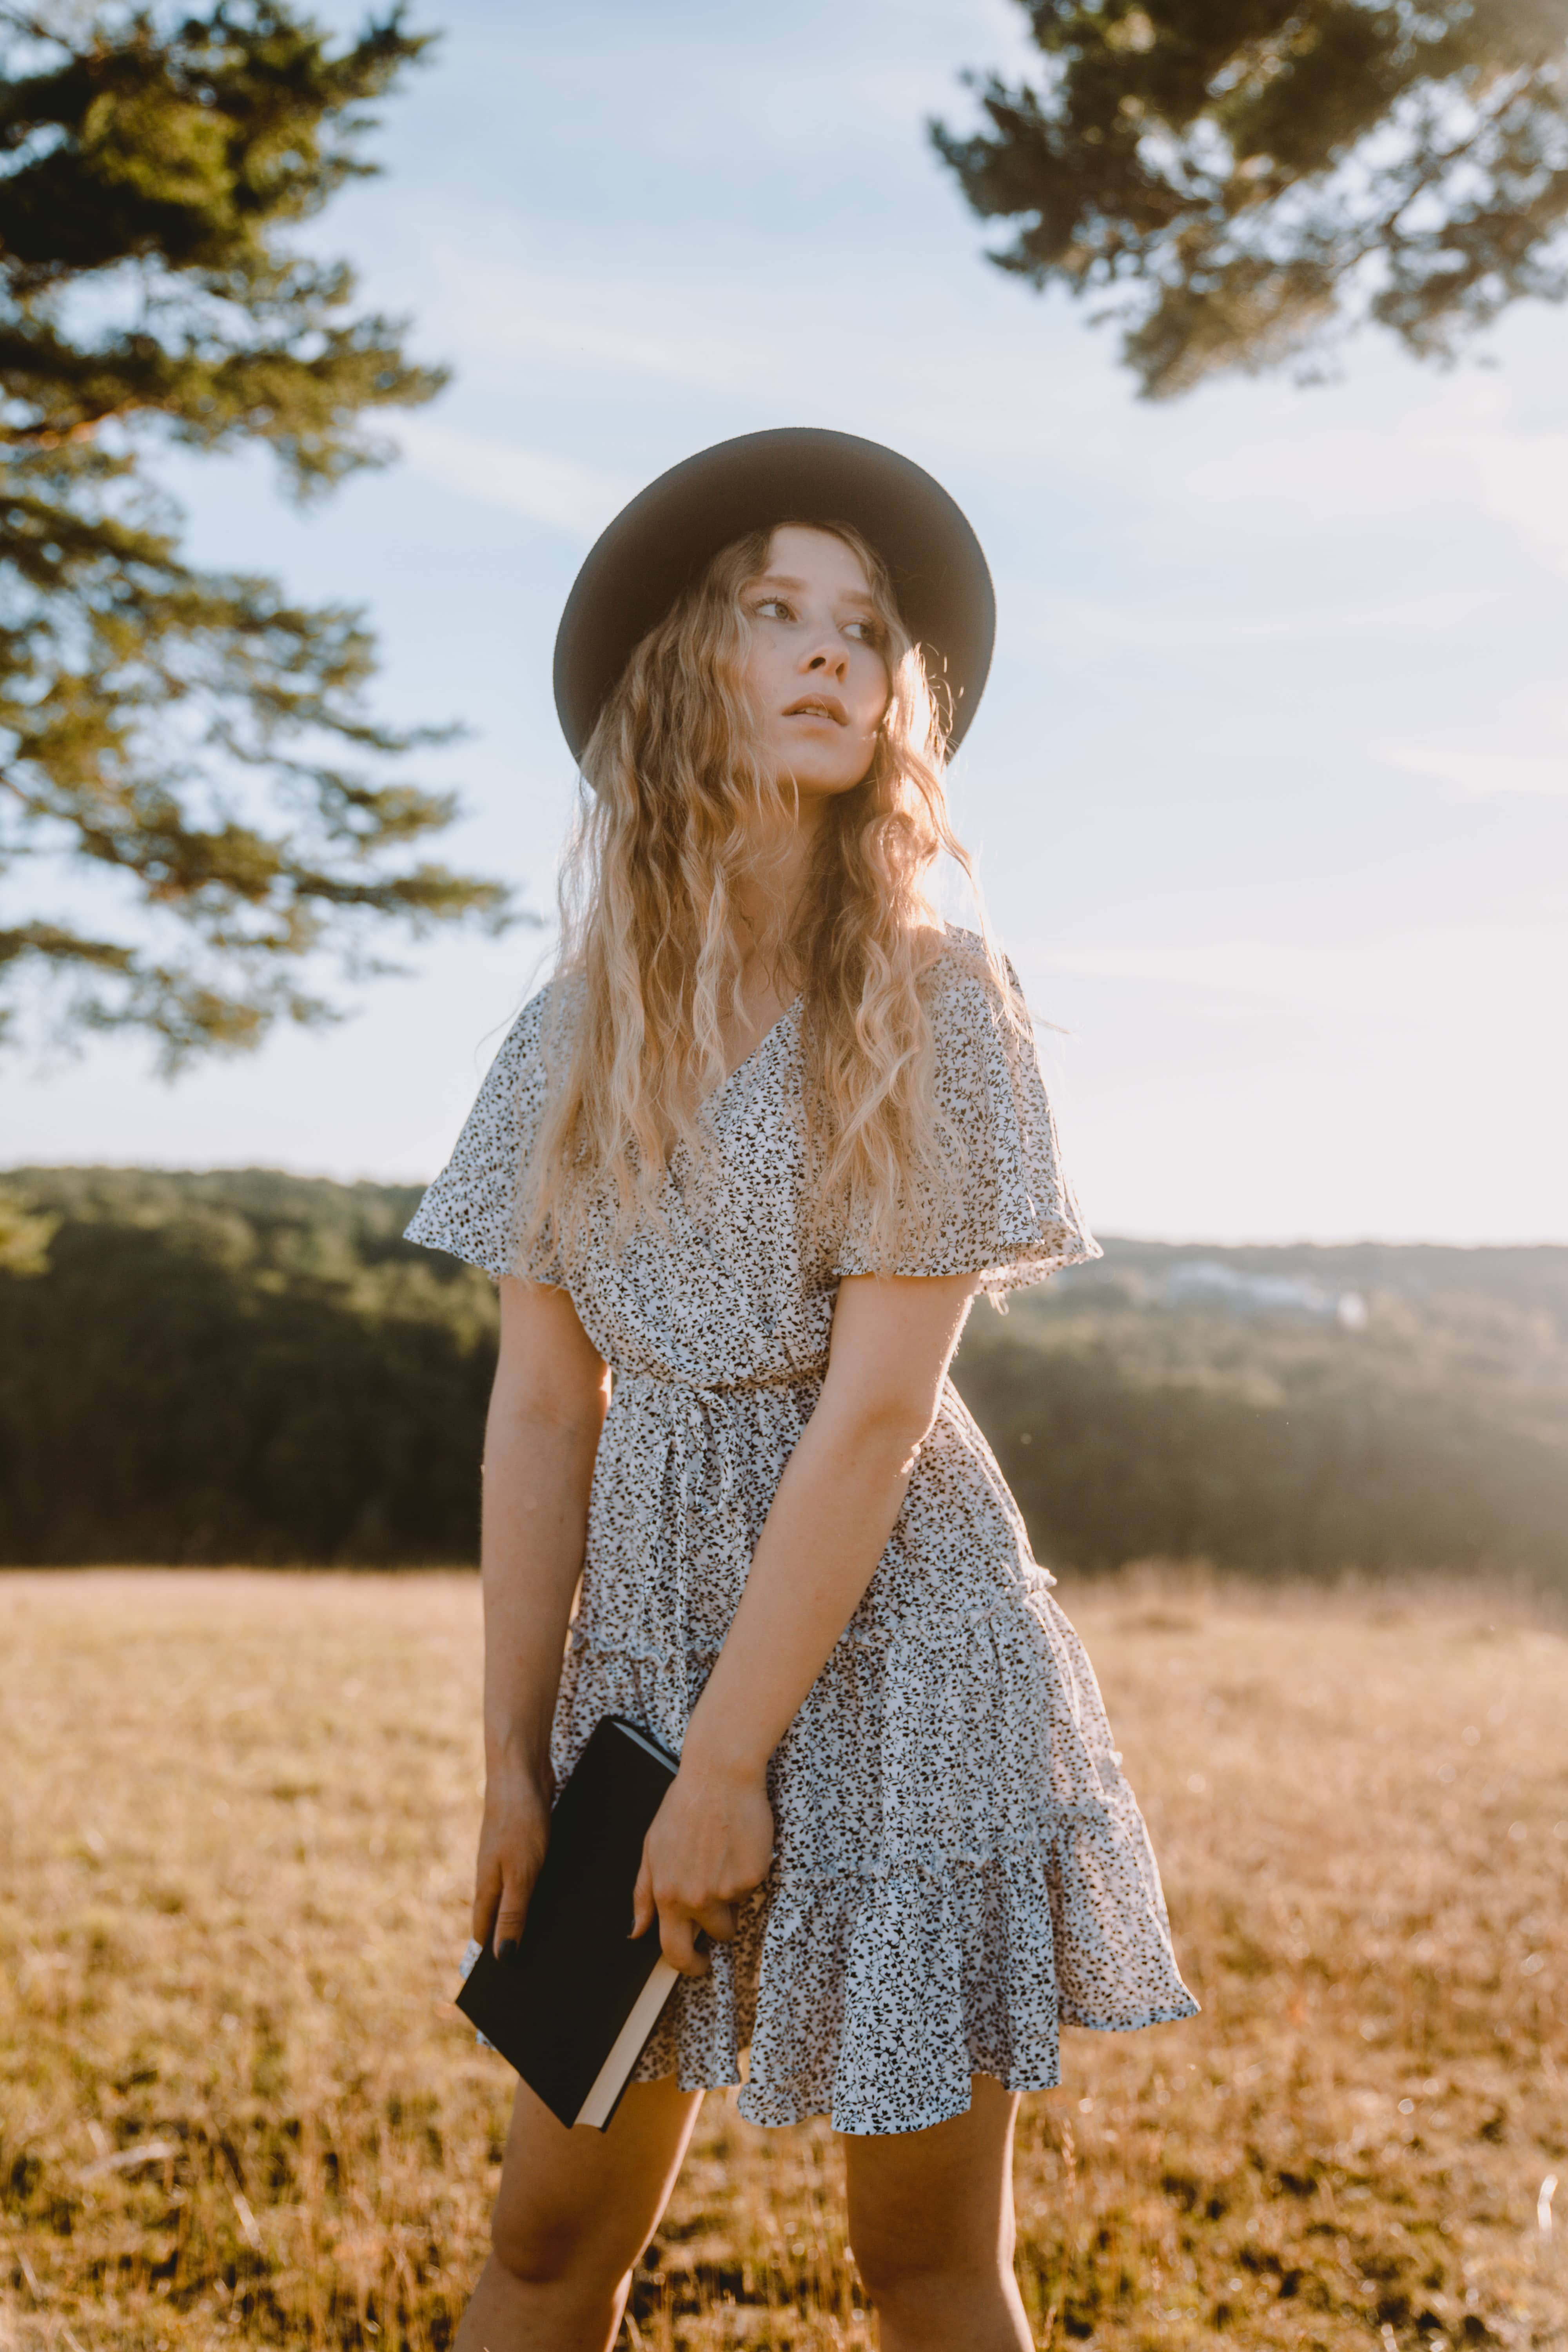 Girl in white dress with black dots and a hat surrounded by nature has a book in her hands while sunset